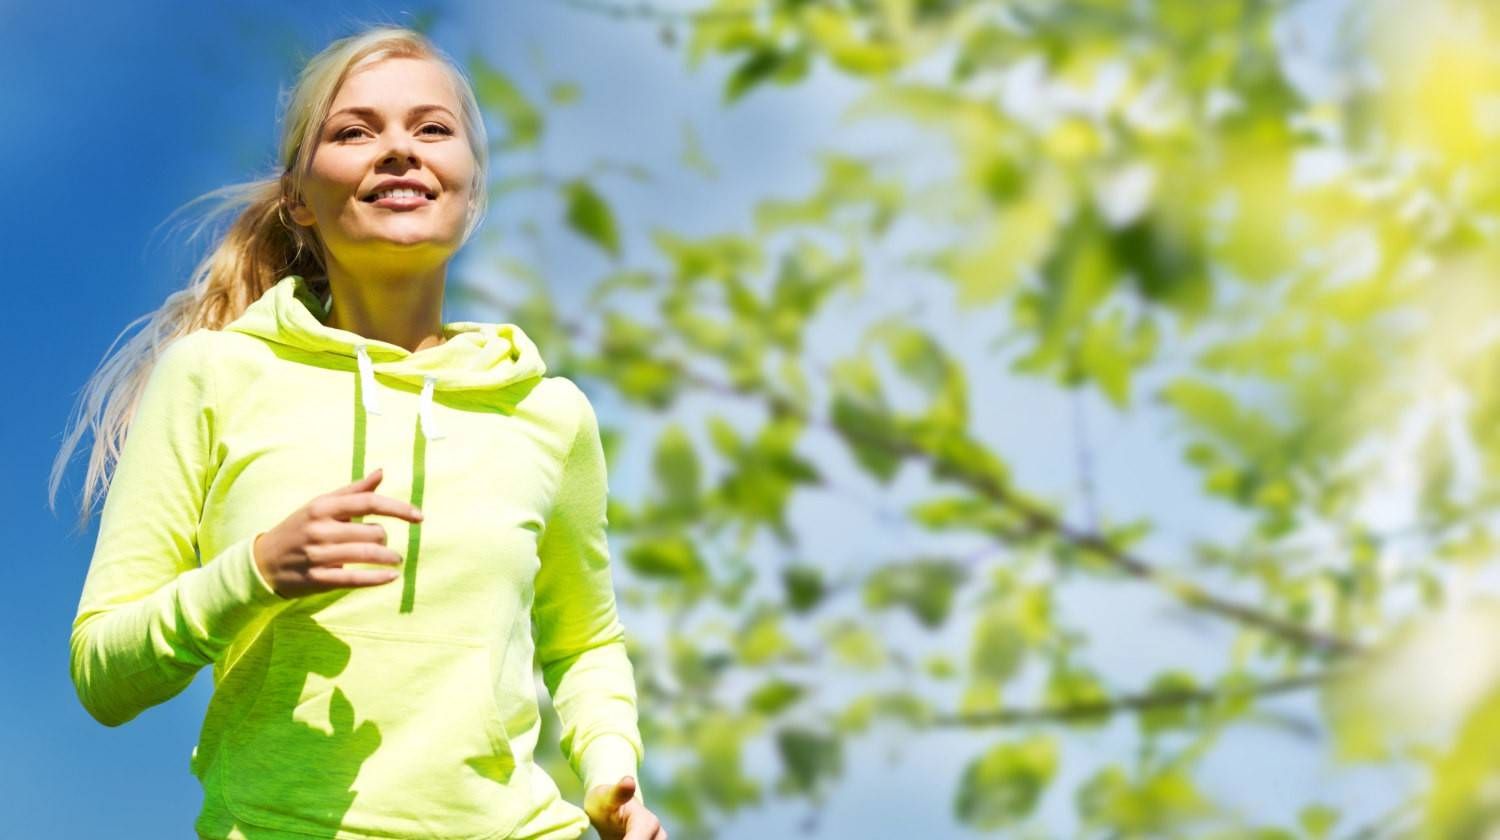 Happy young female runner jogging outdoors | Why Enzyme Supplementation Is Necessary for Most People | digestive enzymes | digestive enzymes benefits | Featured